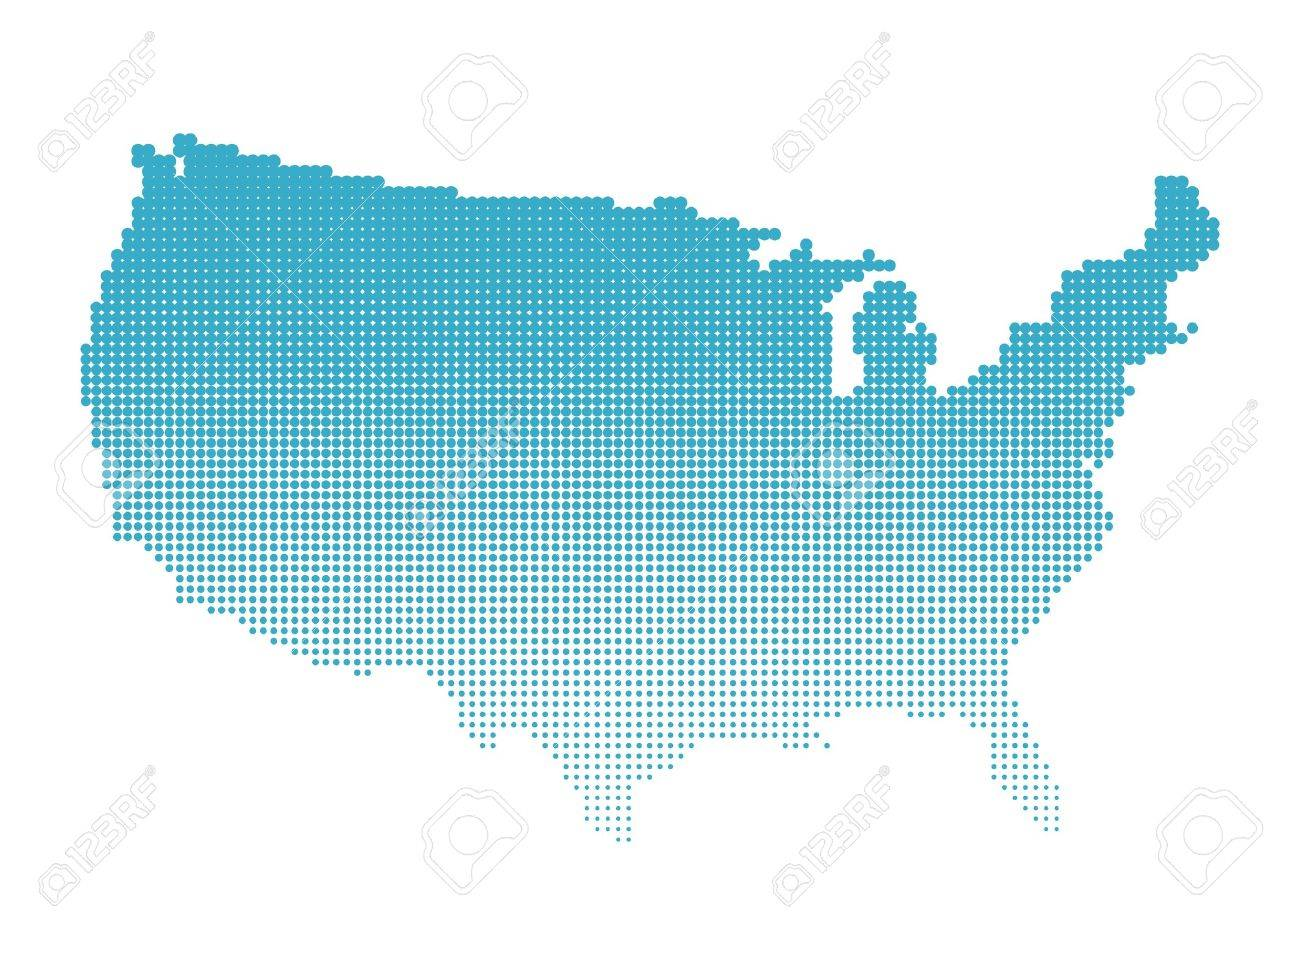 halftone map of usa map of united states of america made of dots blue